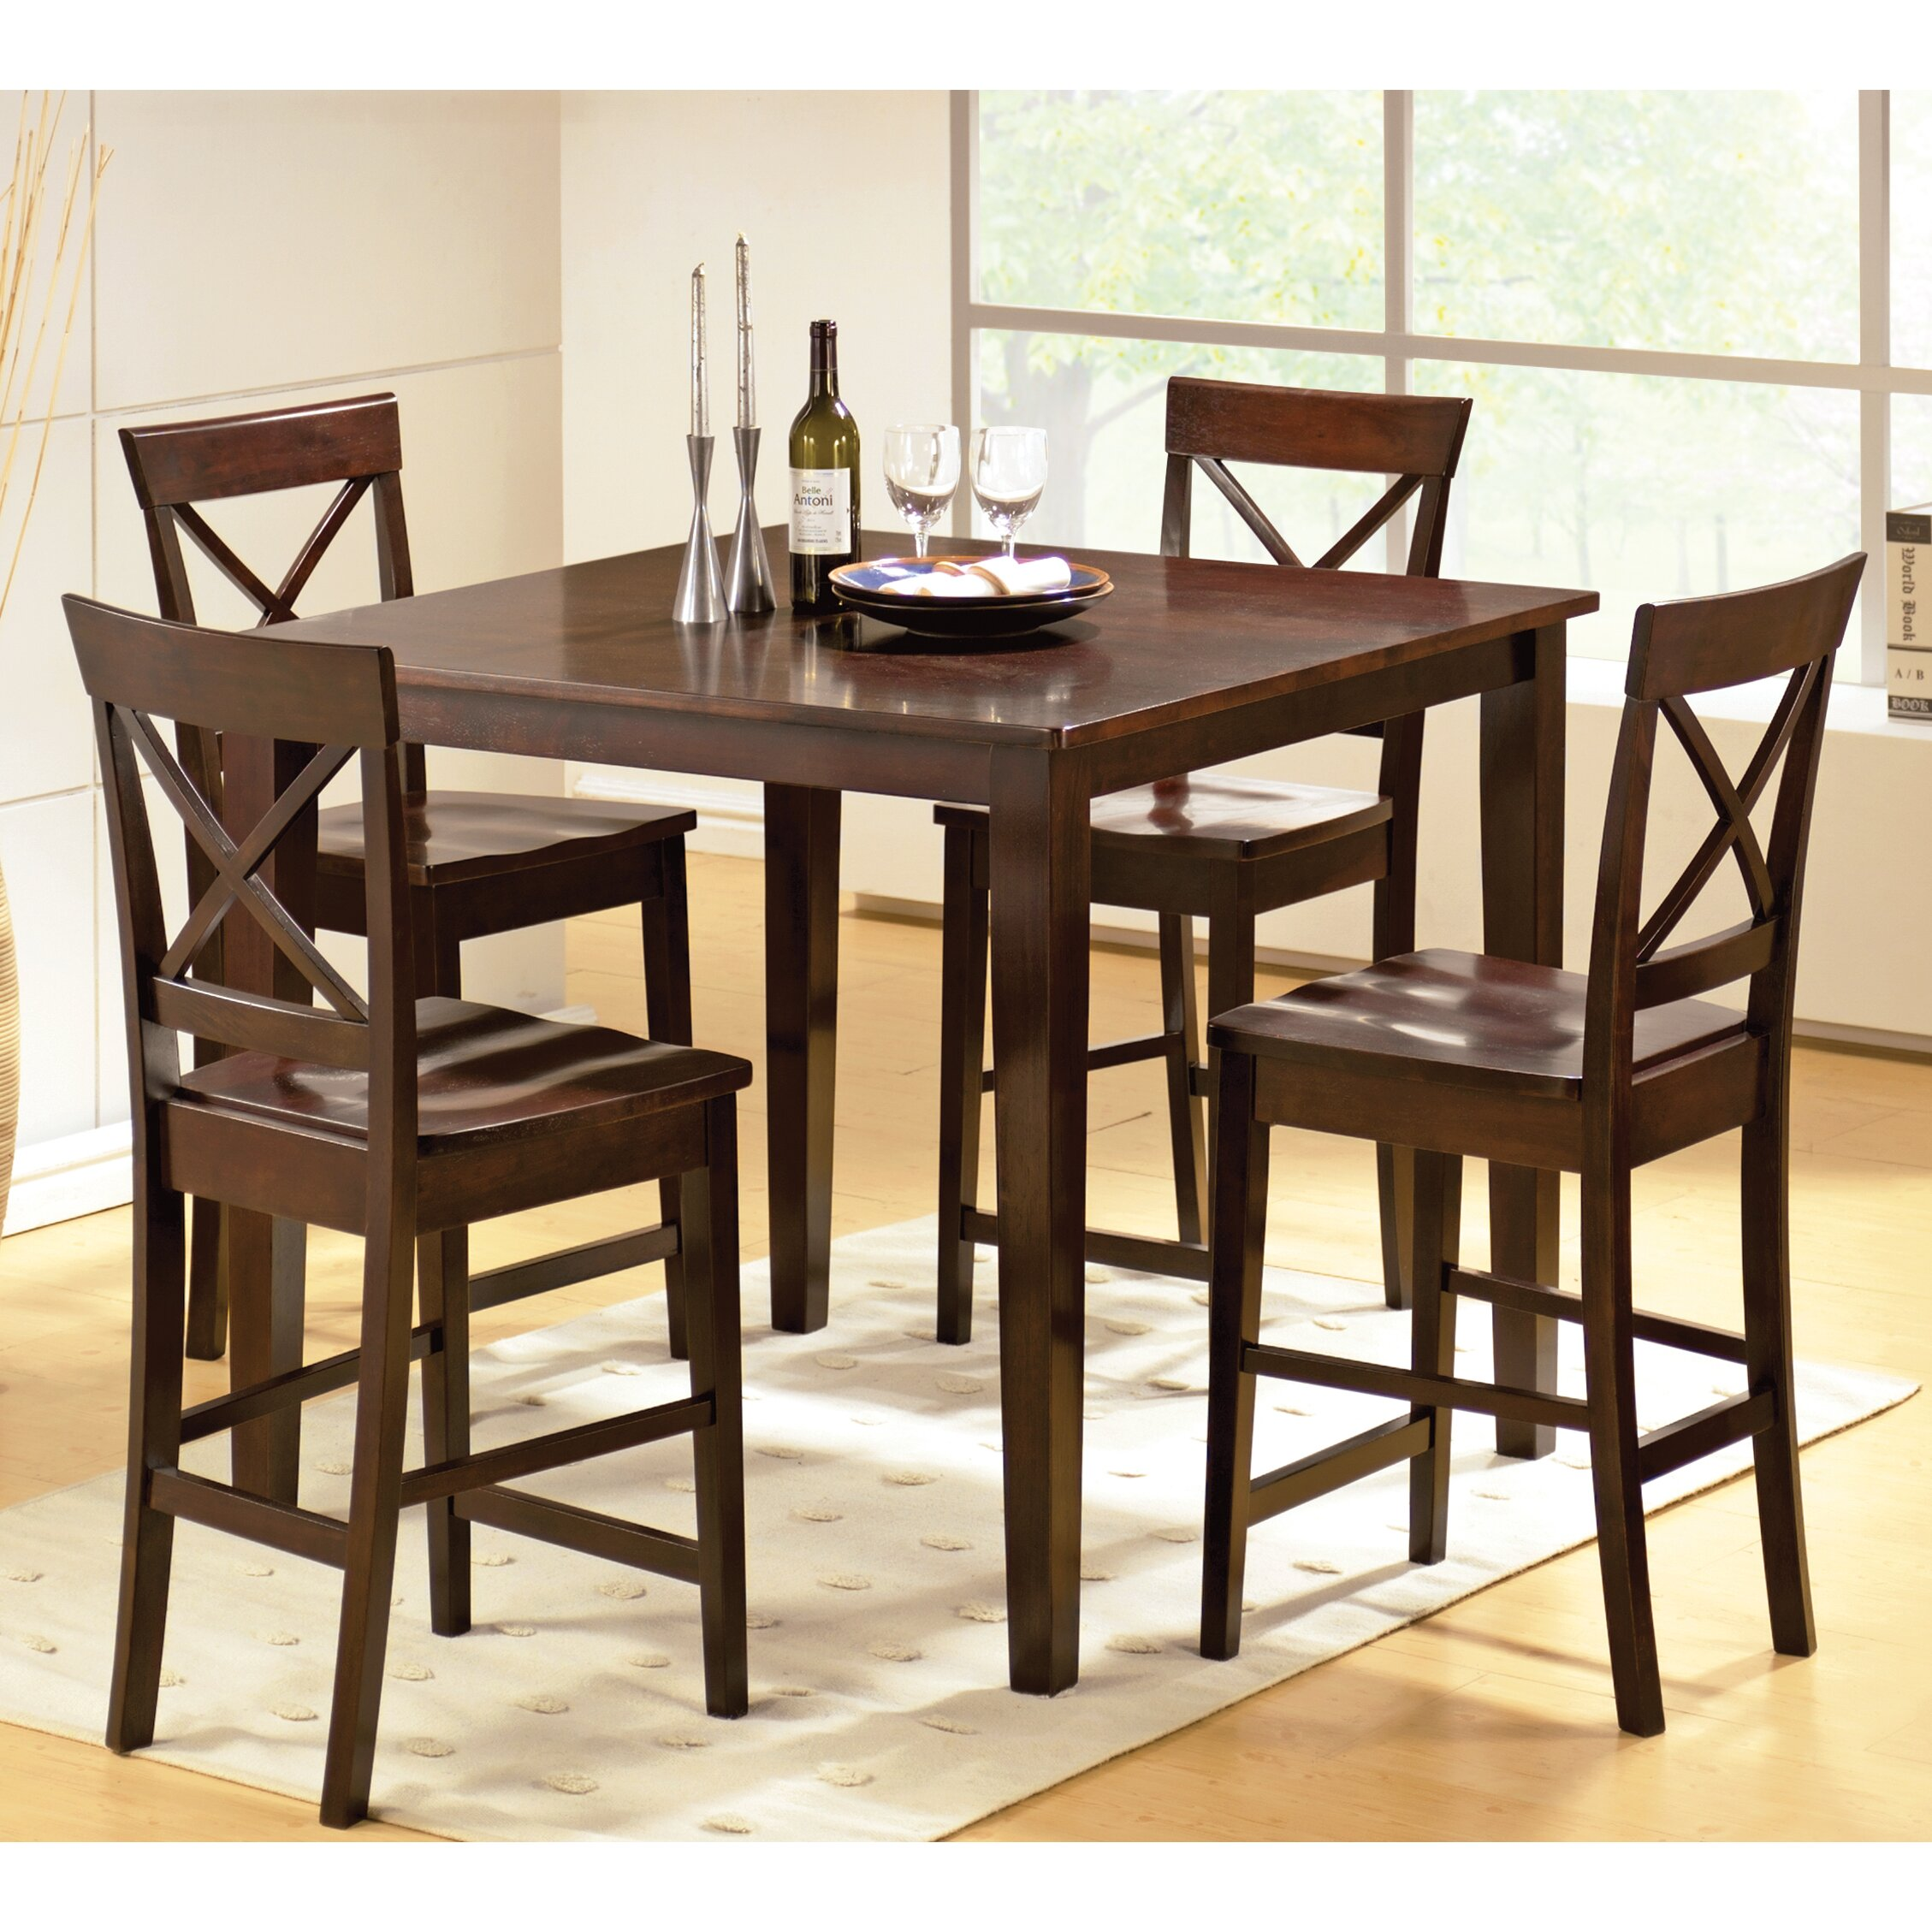 Steve silver furniture cobalt 5 piece counter height dining set reviews wayfair - Silver dining table and chairs ...